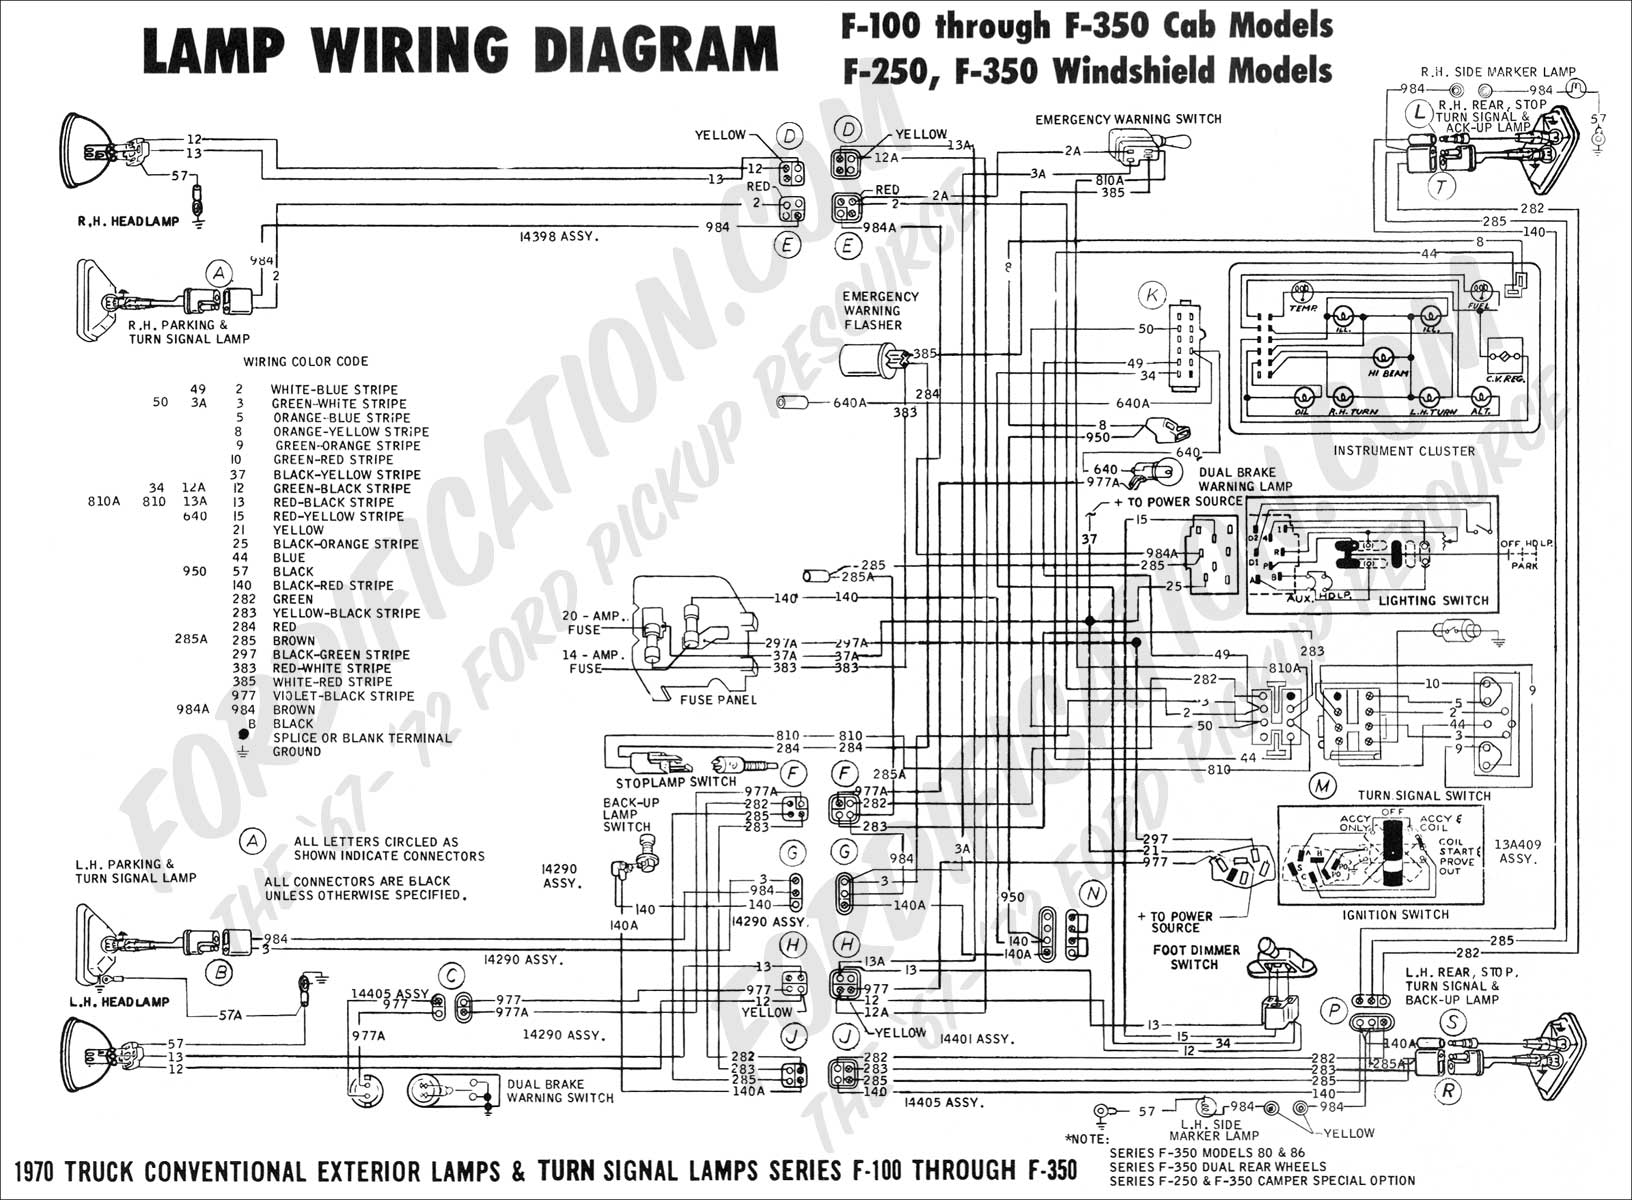 95 Toyota 4runner Vacuum Diagram moreover Dodge Fuse Box Diagram 1978 additionally RepairGuideContent as well Wiring Diagram For Ford 3000 Tractor furthermore 72 Chevy C10 Starter Wiring Diagram For An. on 71 chevy pu wiring diagram